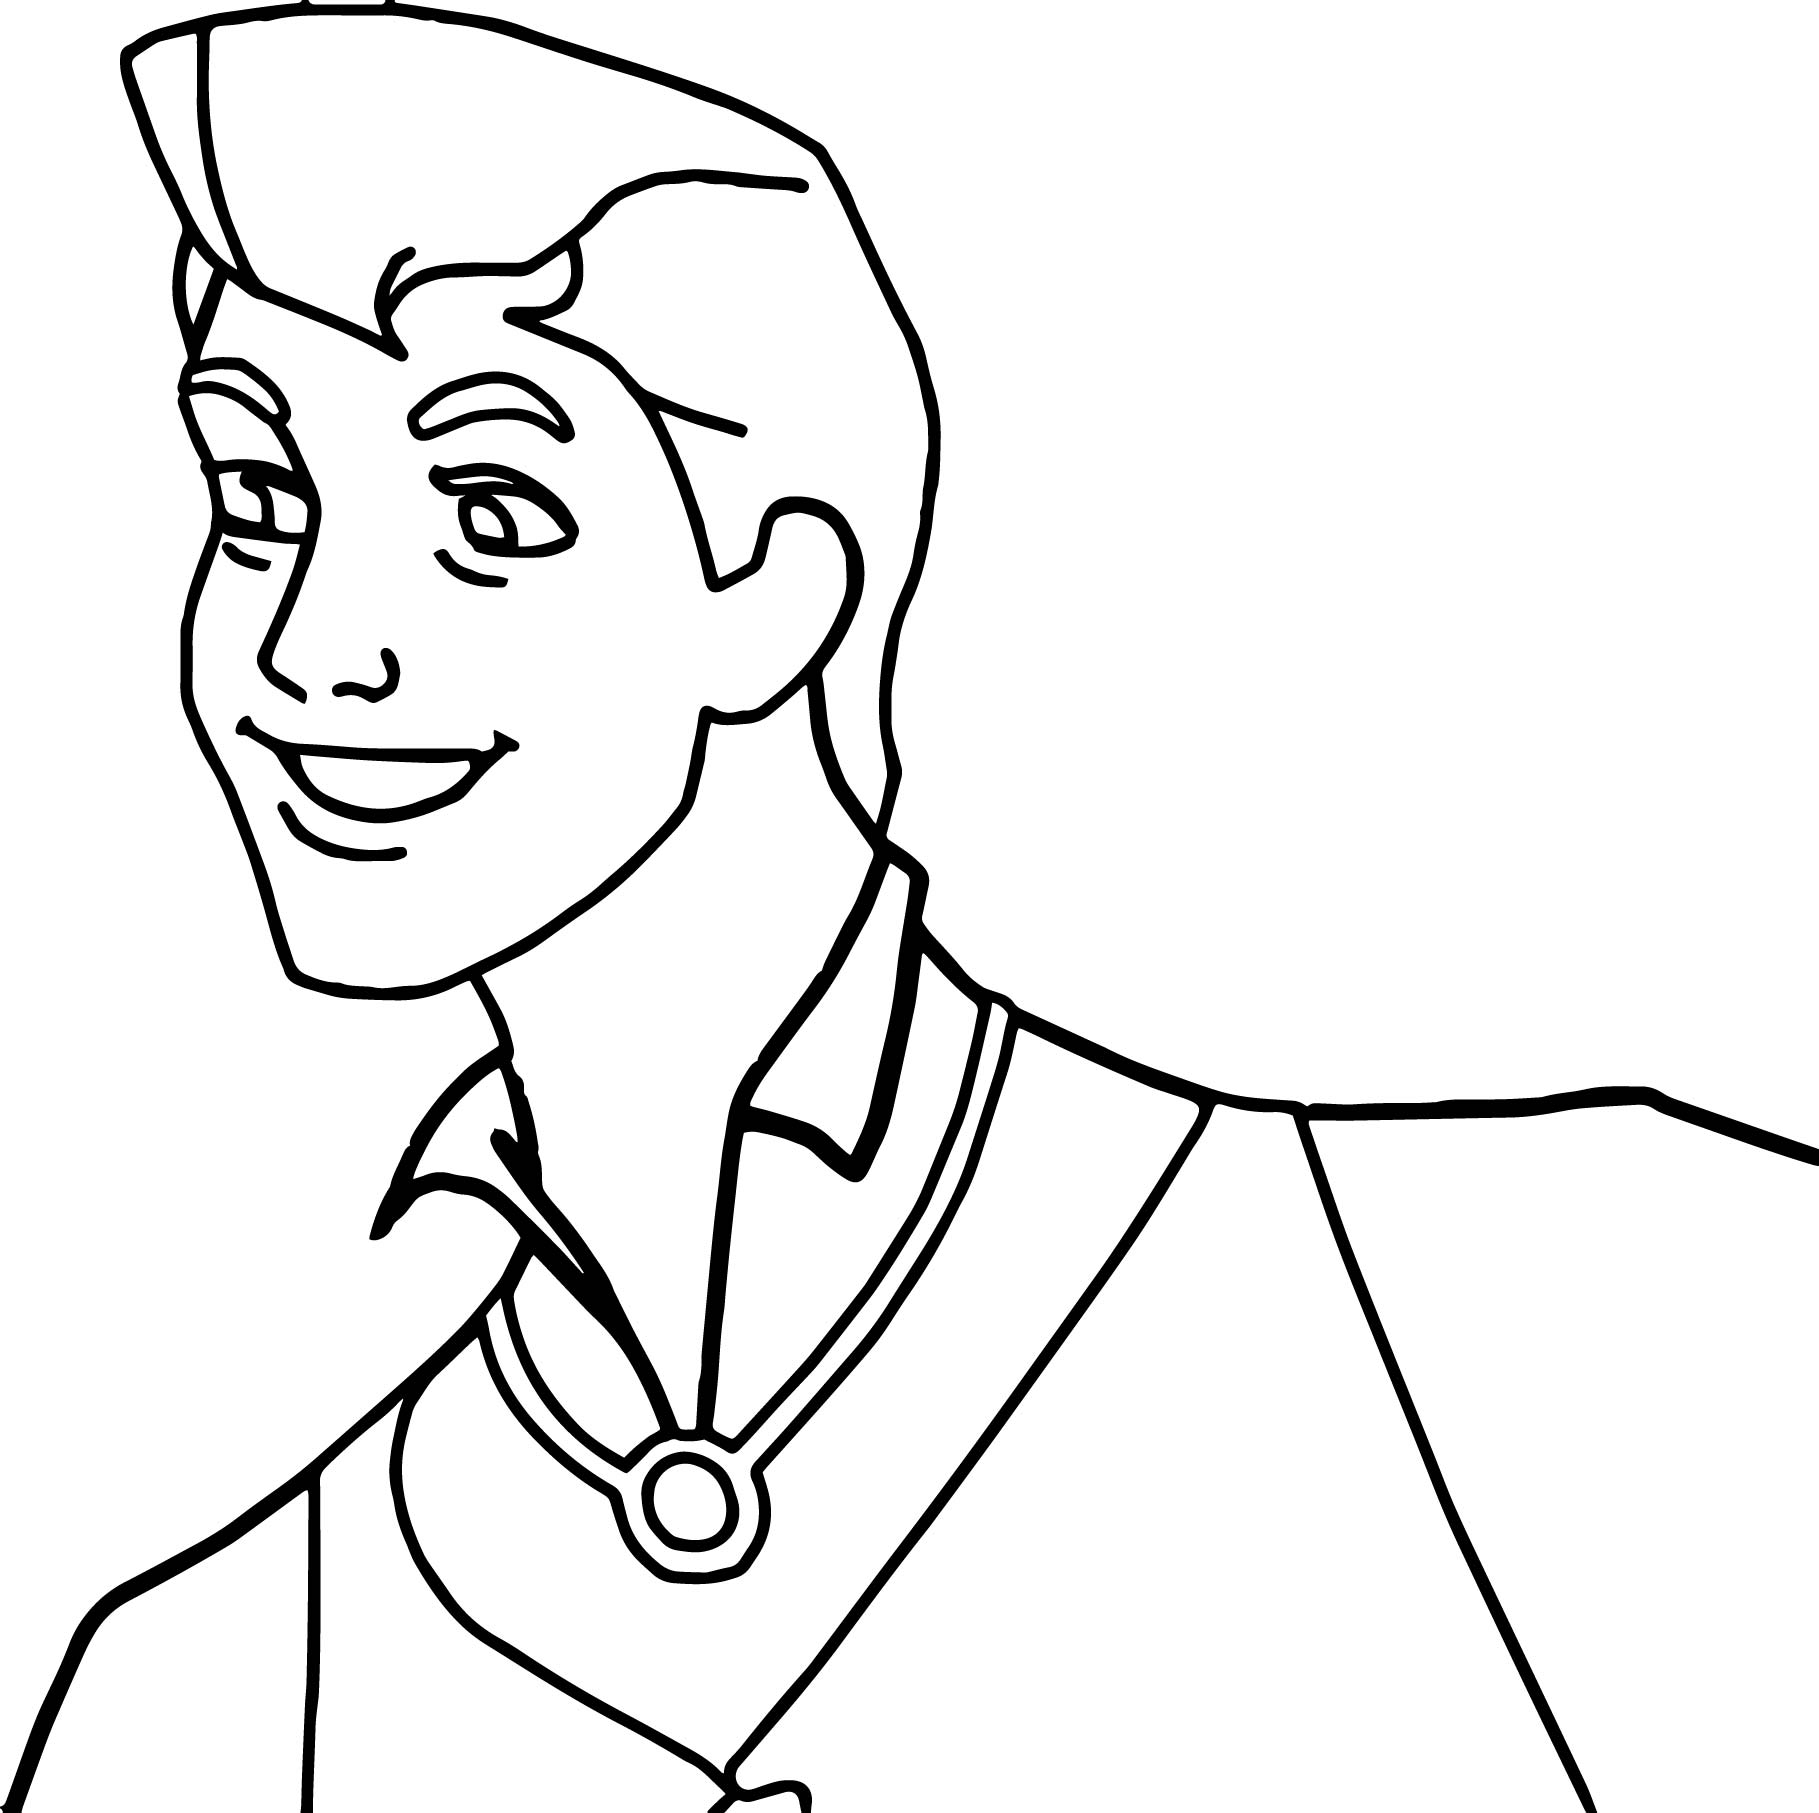 Prince Phillip And Samson Man Coloring Pages | Wecoloringpage.com